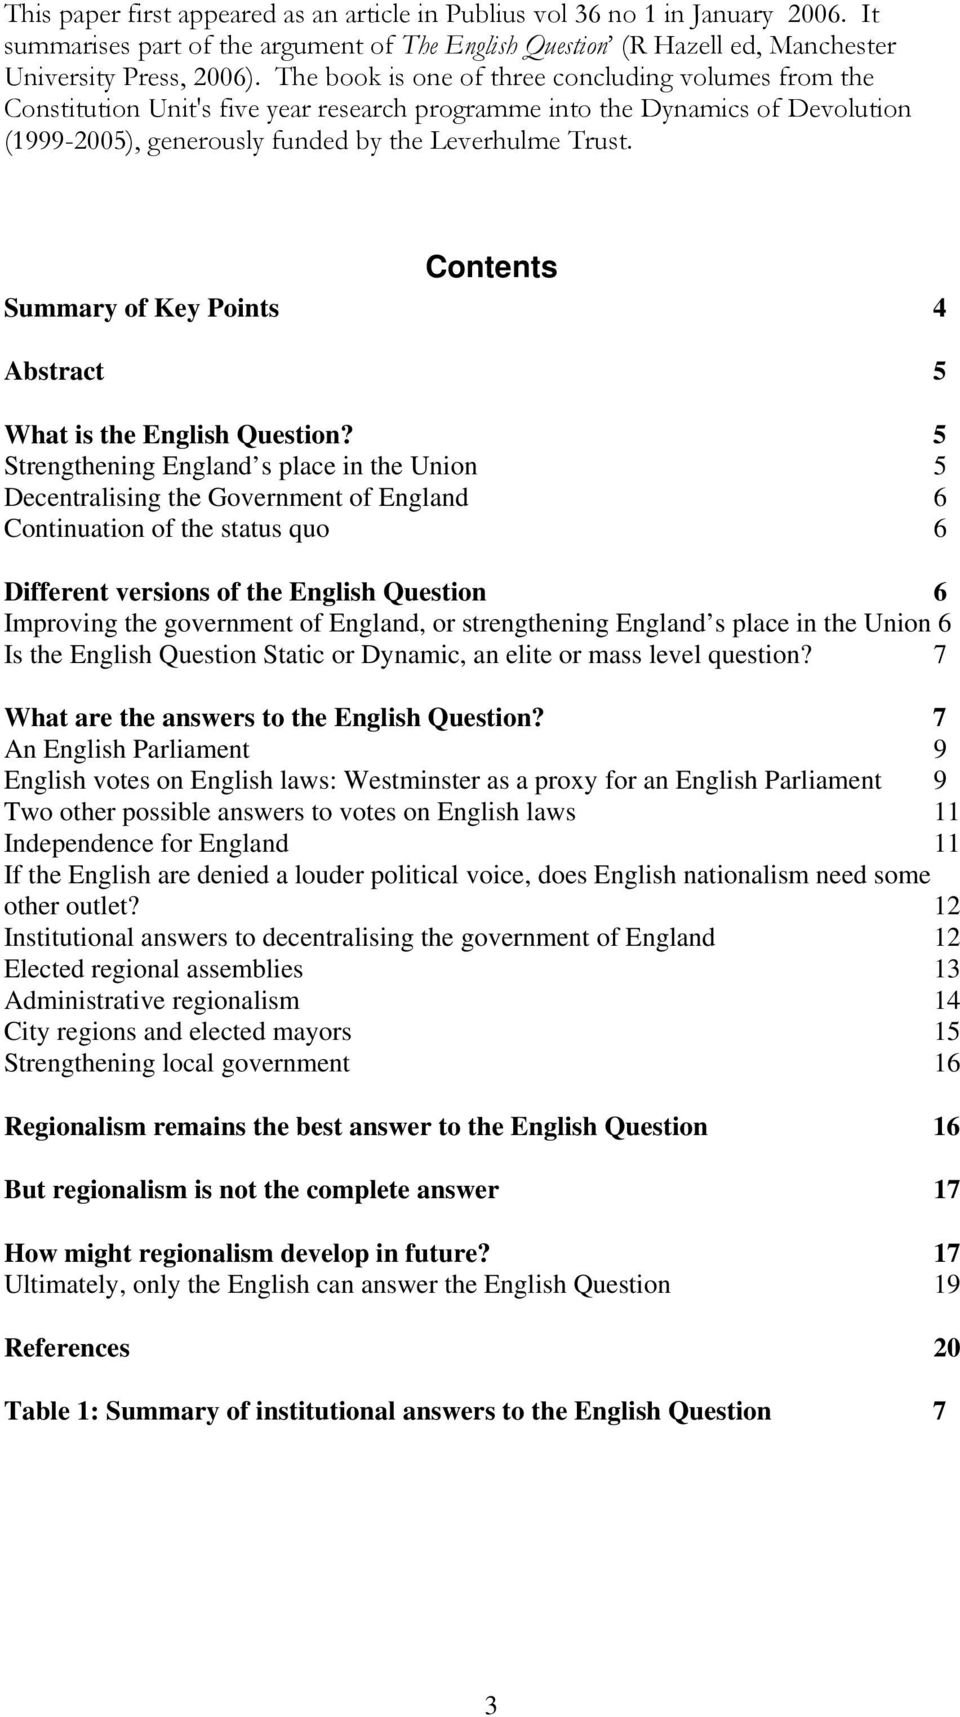 Contents Summary of Key Points 4 Abstract 5 What is the English Question?